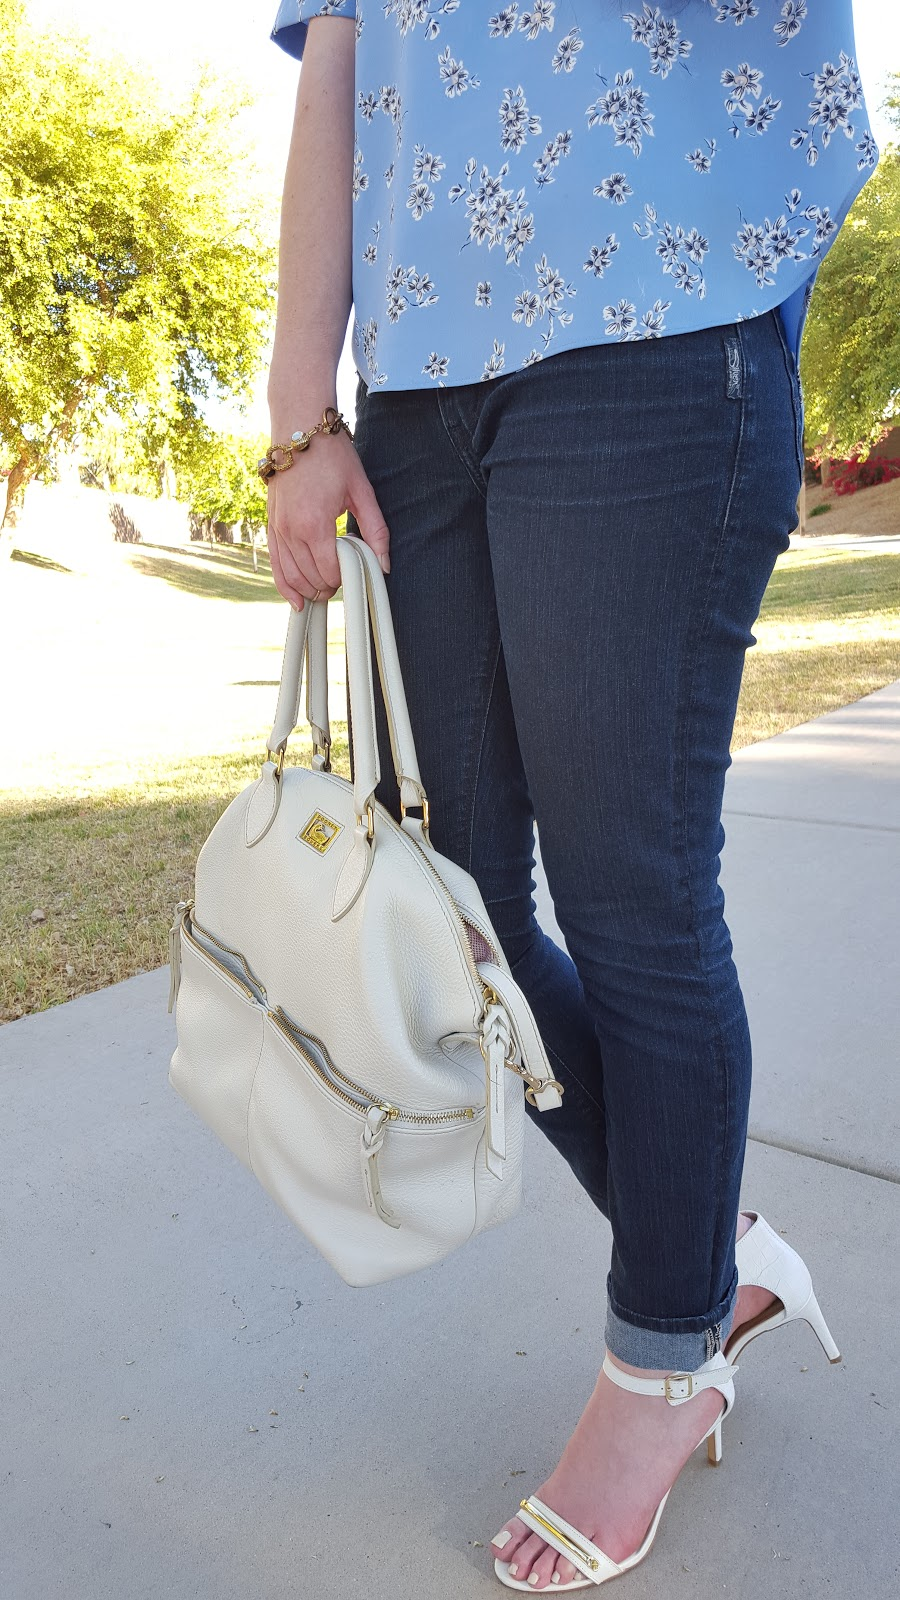 chic and easy Spring outfit- a basic top, jeans, and heeled sandals